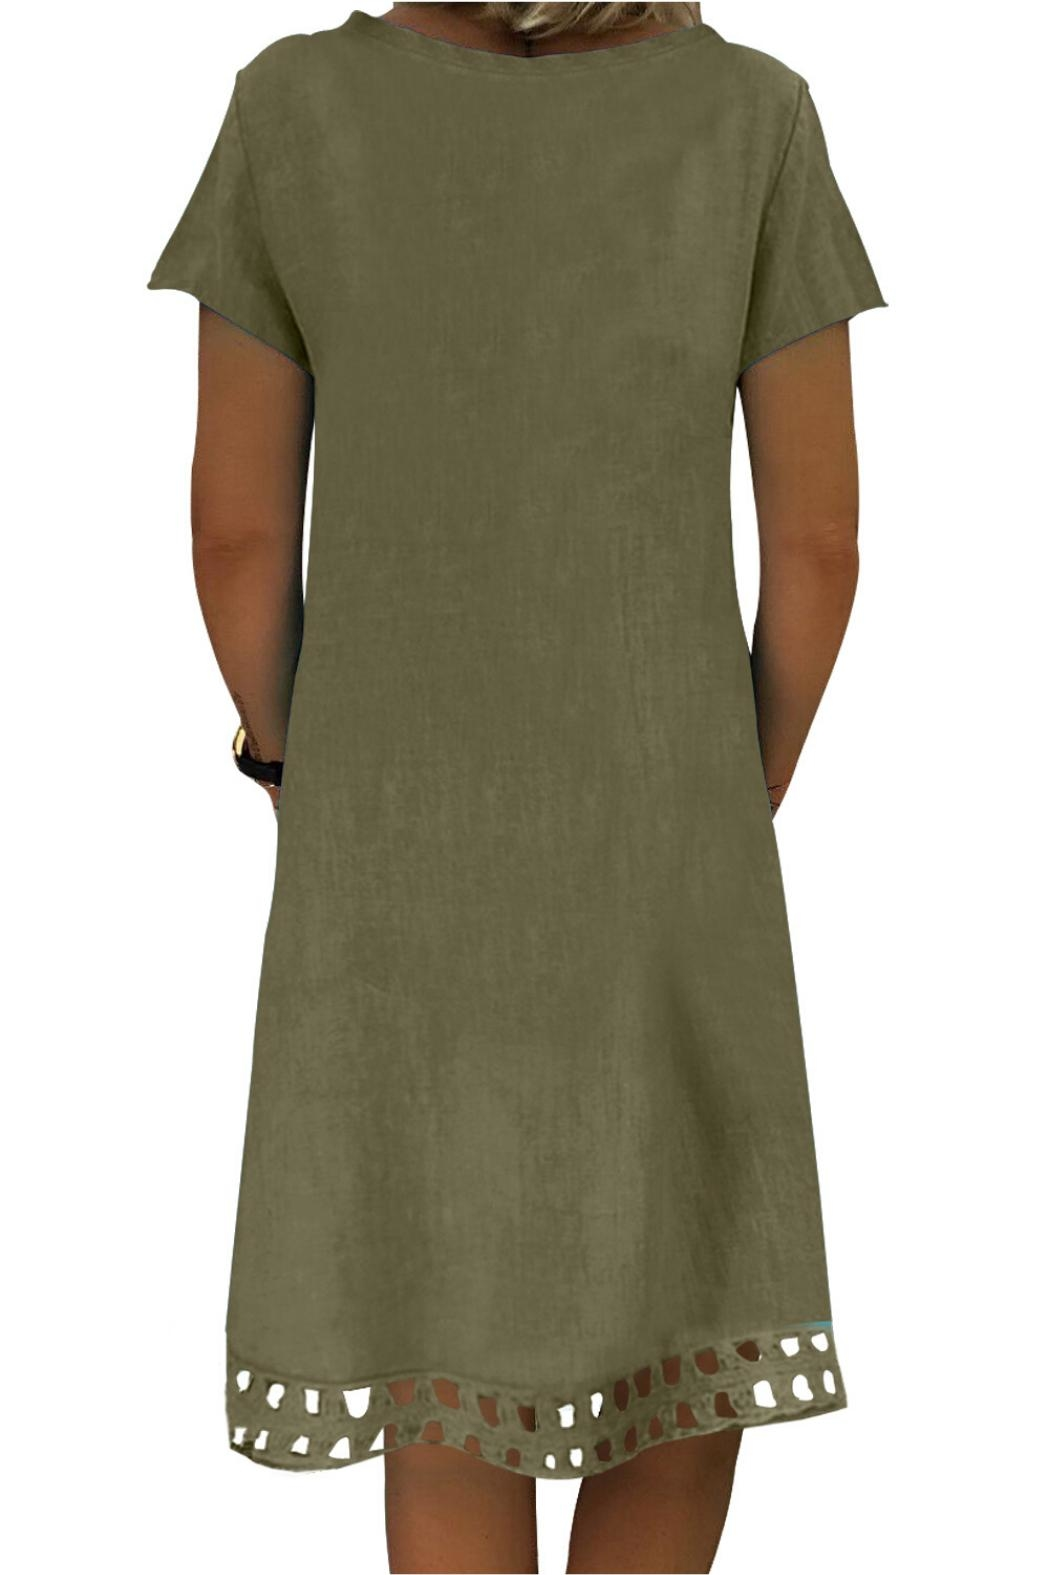 Unbranded Green A-Line Dress - Front Full Image